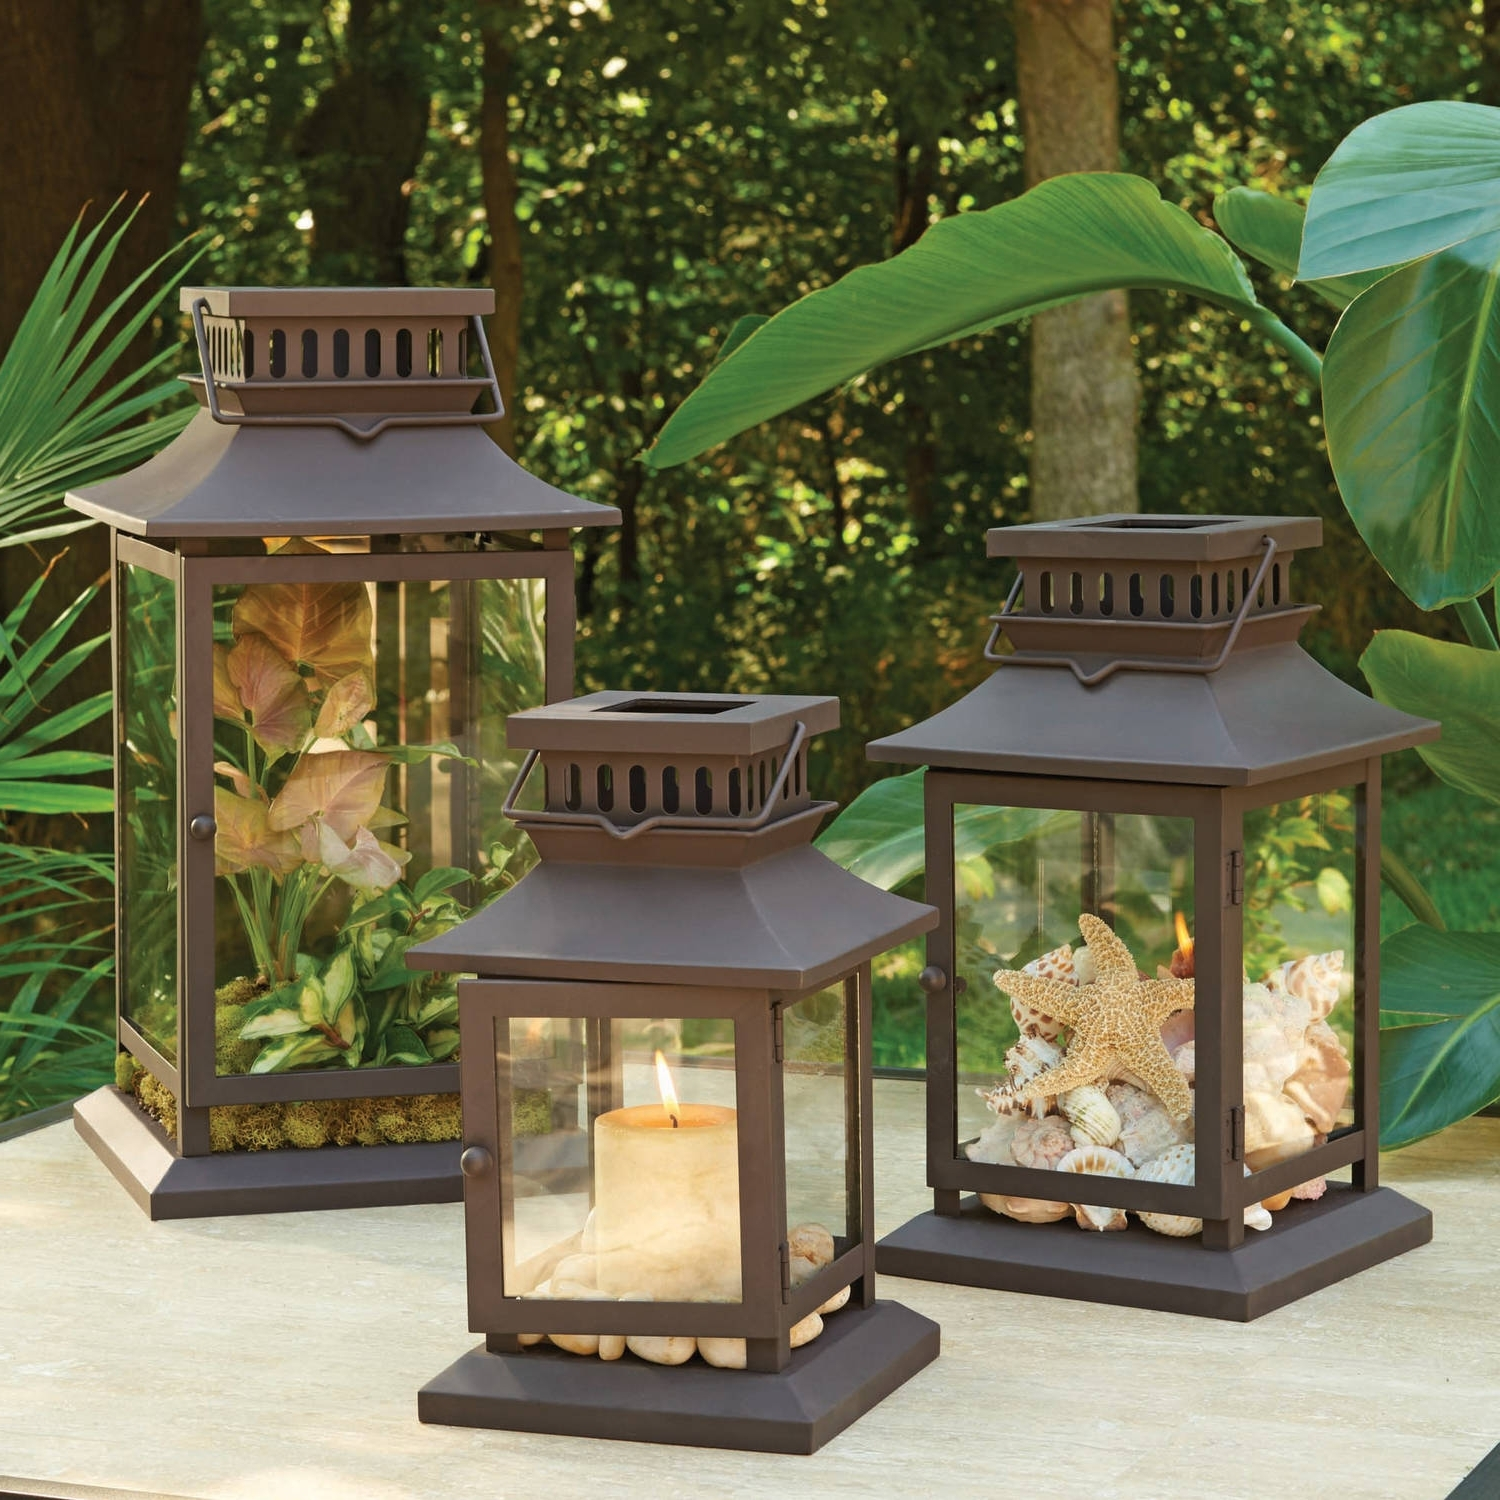 Outdoor Vinyl Lanterns Pertaining To Best And Newest Better Homes And Gardens Square Metal Outdoor Lantern – Walmart (Gallery 17 of 20)